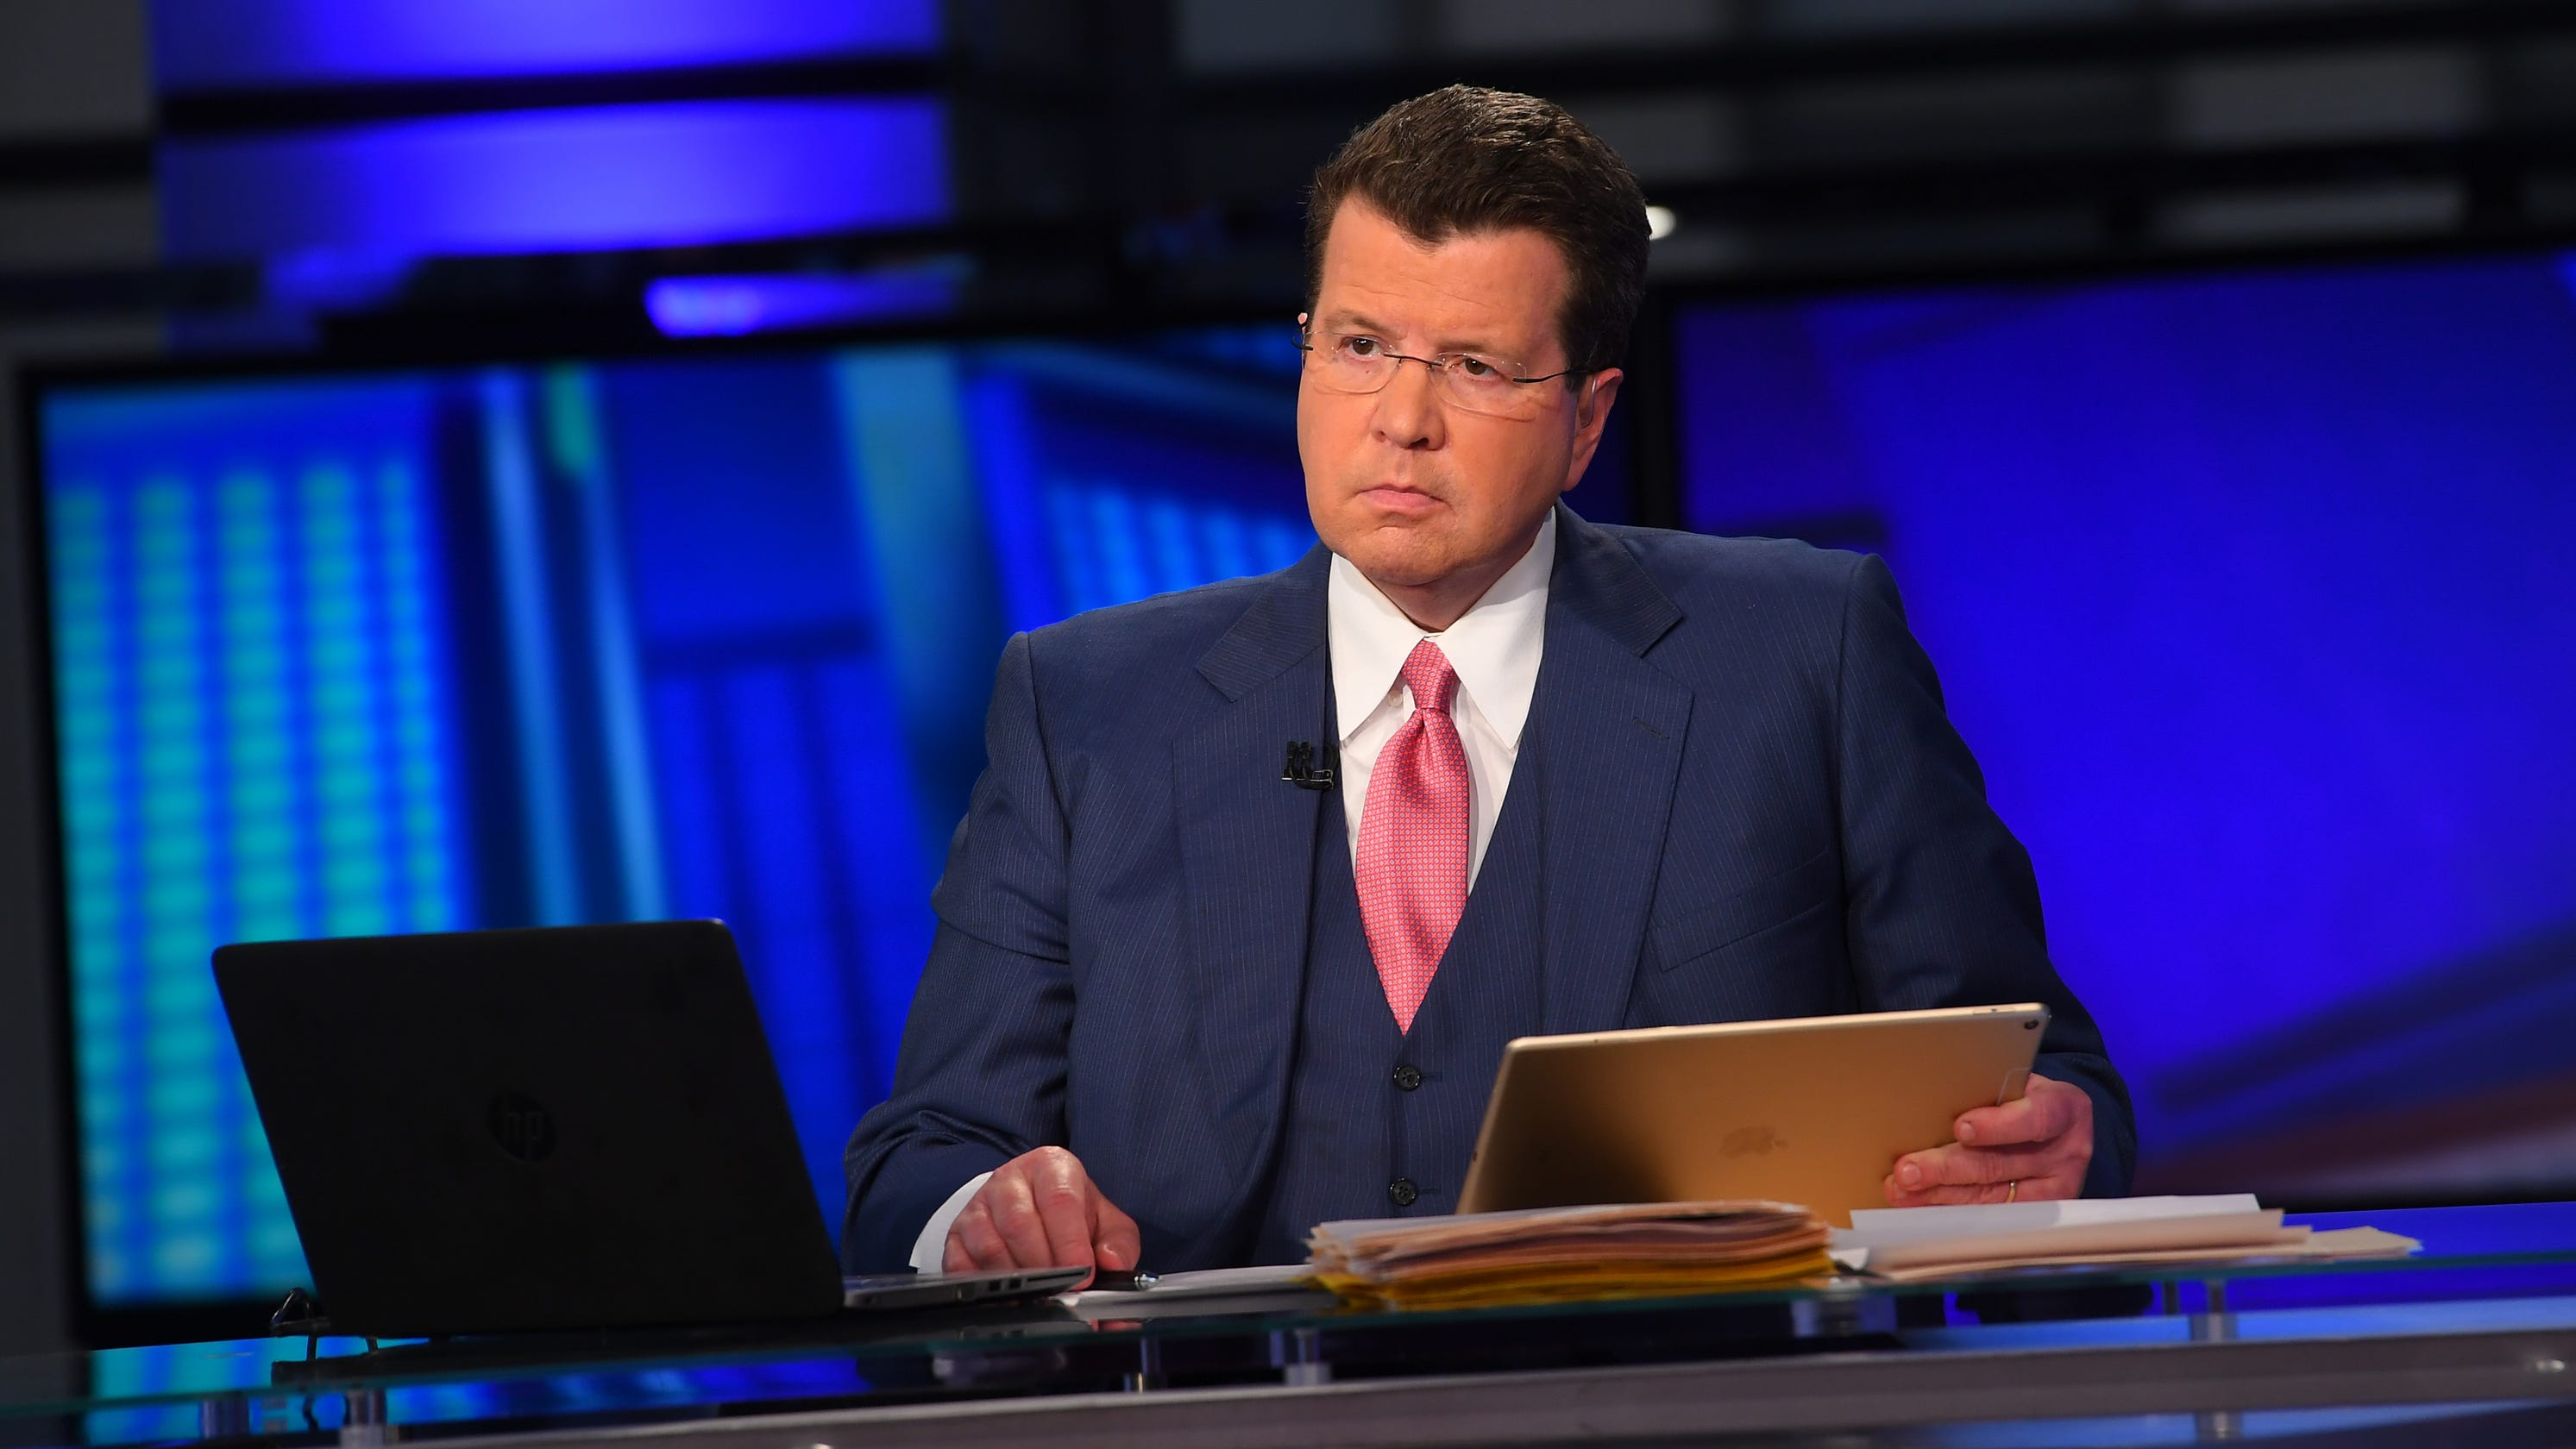 Fox News' Neil Cavuto praises Don Lemon, Chris Cuomo after Ellen DeGeneres defends Bush friendship